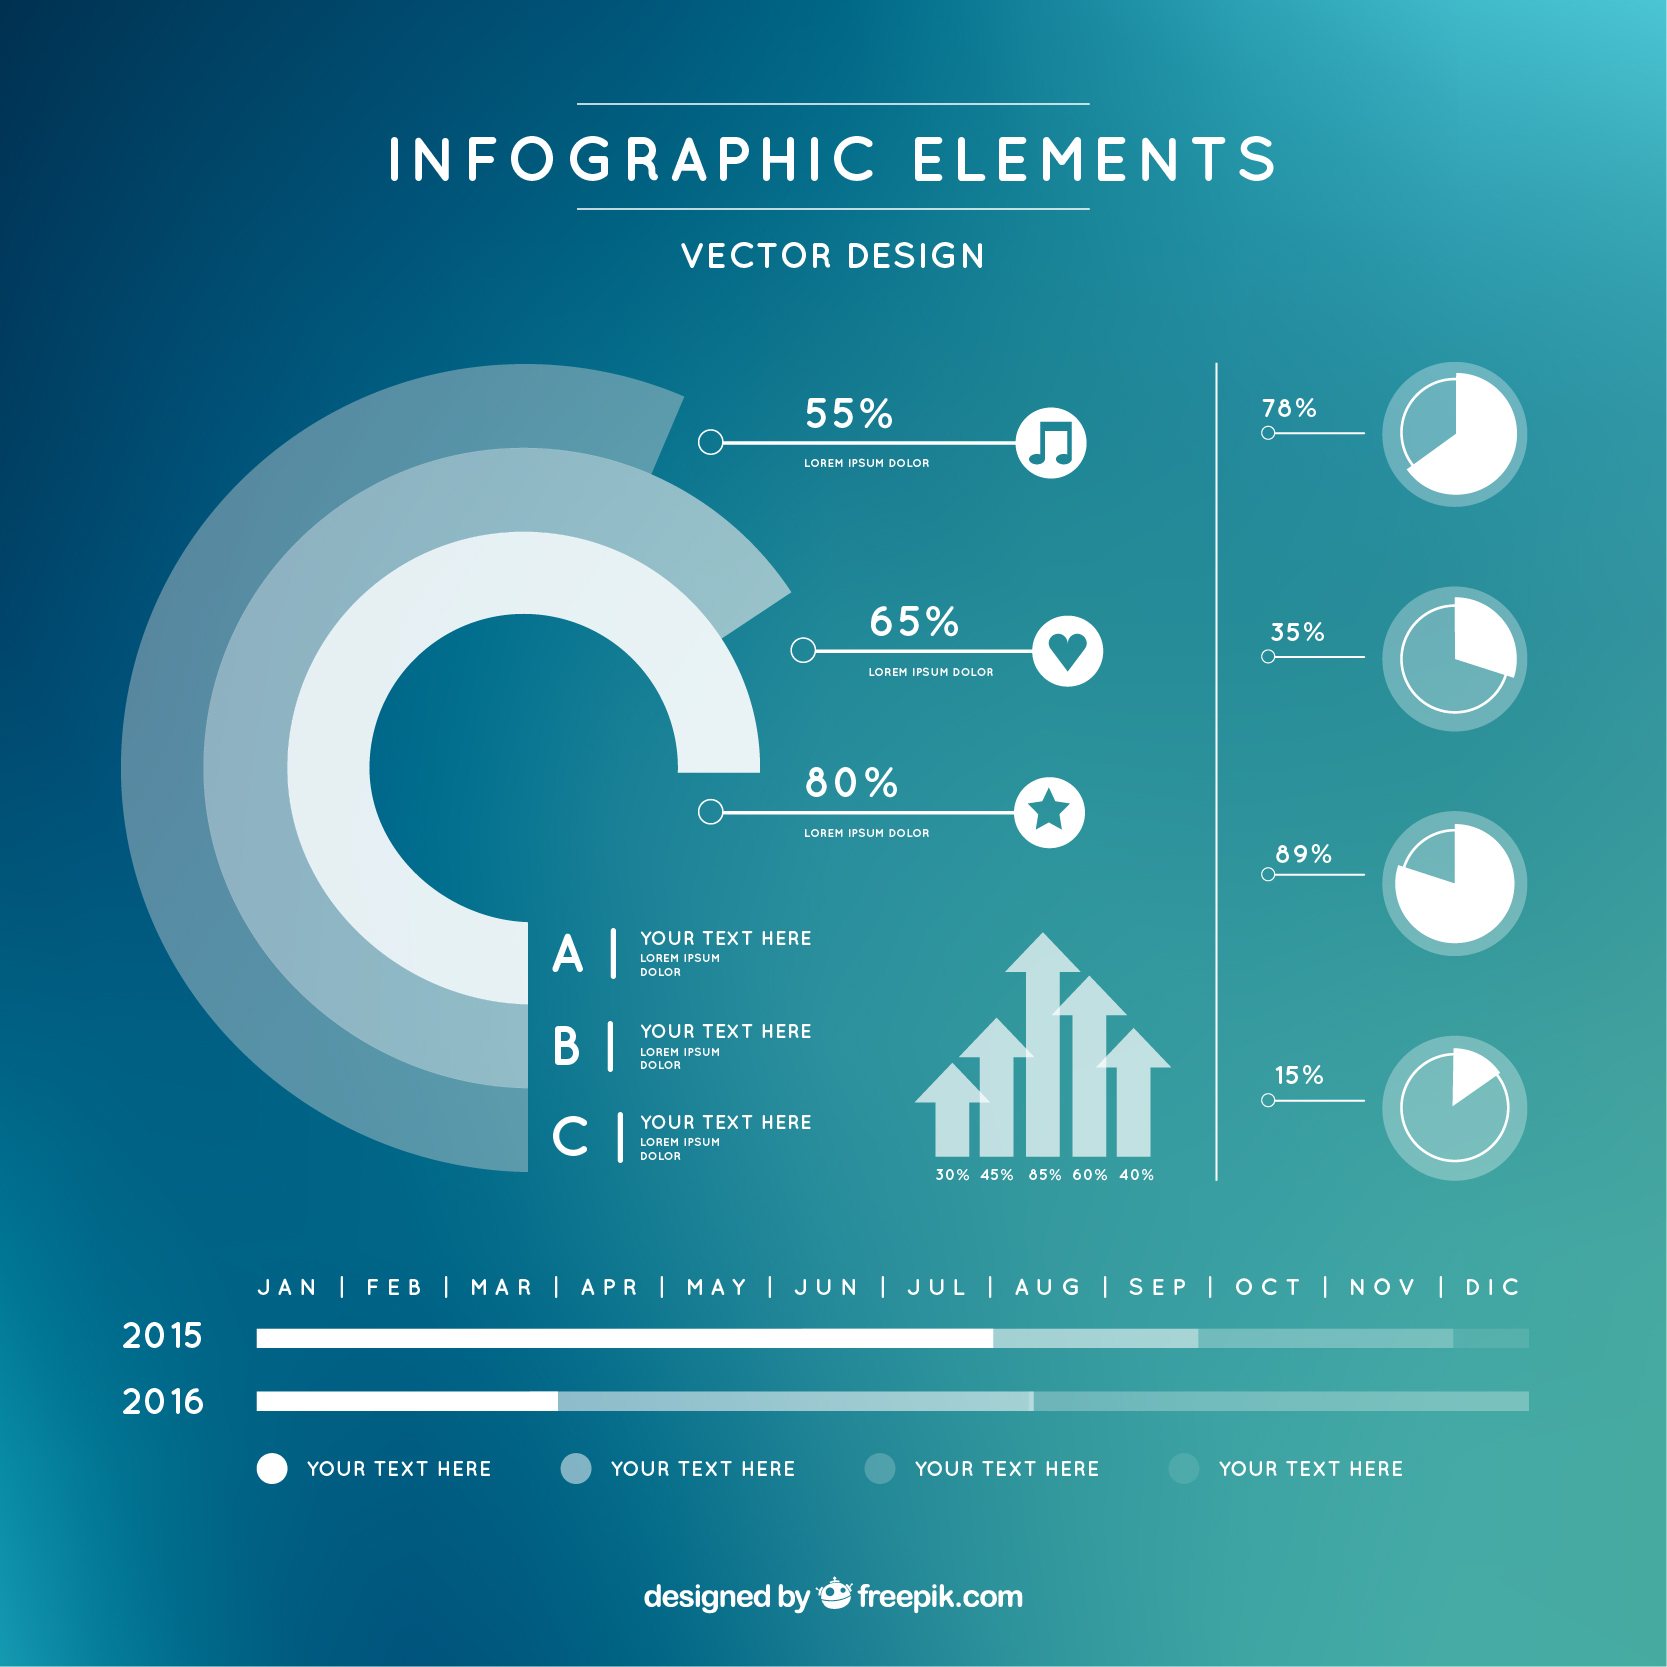 11 Steps to Create a Data Driven Infographic